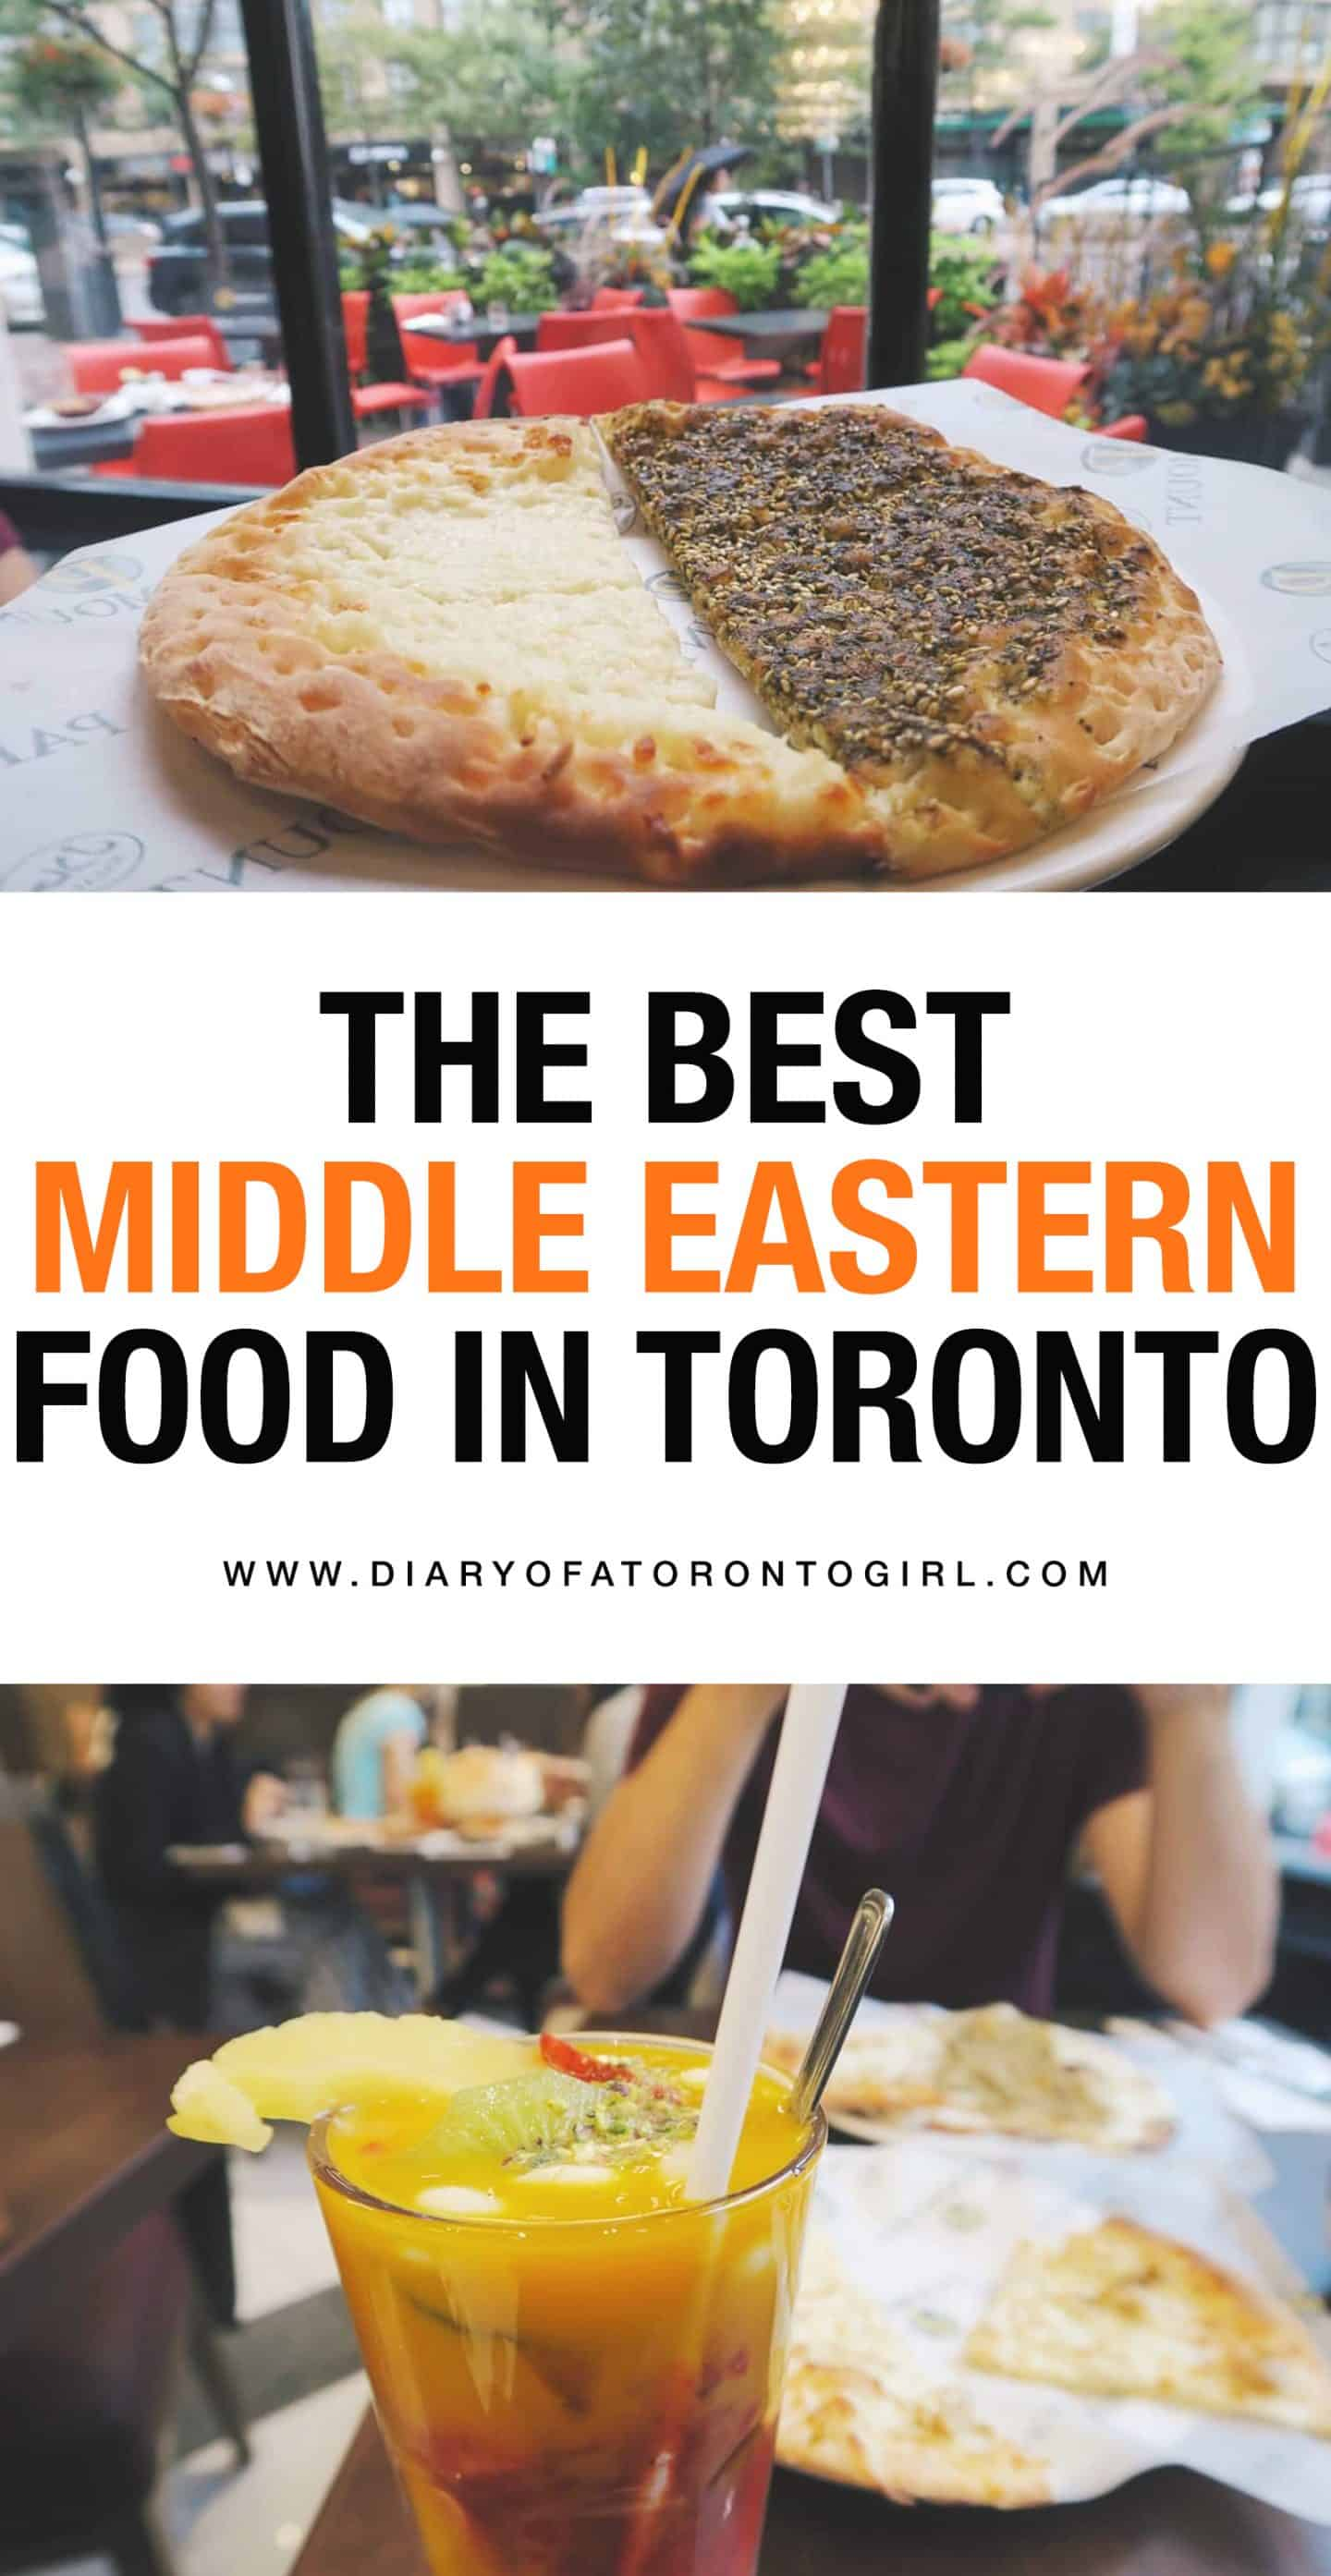 Looking for the best Middle Eastern food in Toronto? From manakeesh to baklava, Paramount Fine Foods serves up some of the best Middle Eastern cuisine.